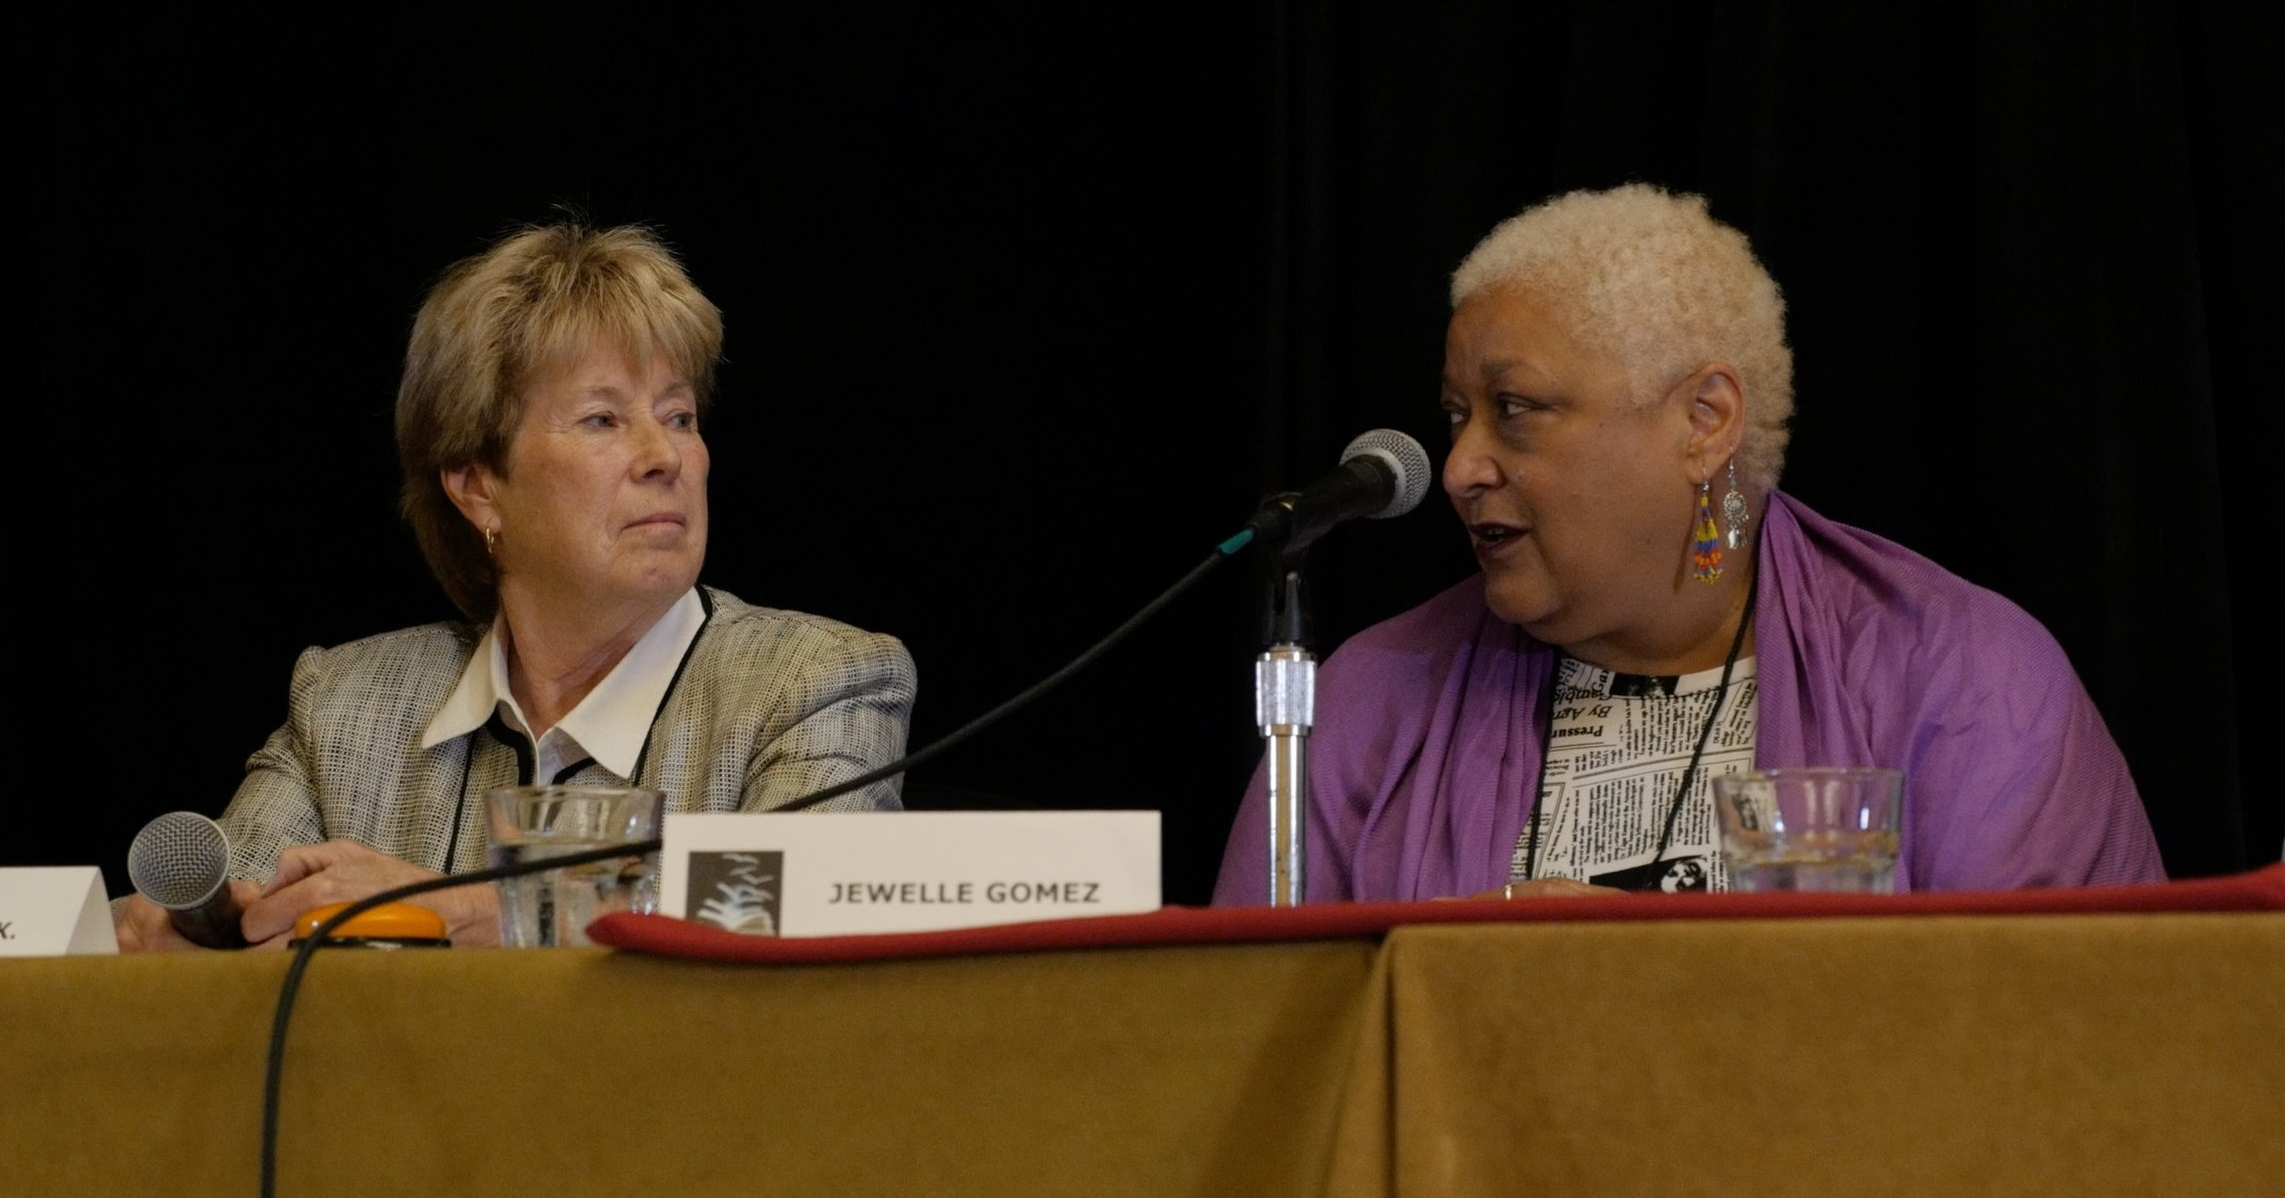 Marianne K. Martin and Jewelle Gomez at a round table discussion during the GCLS 2016 Conference